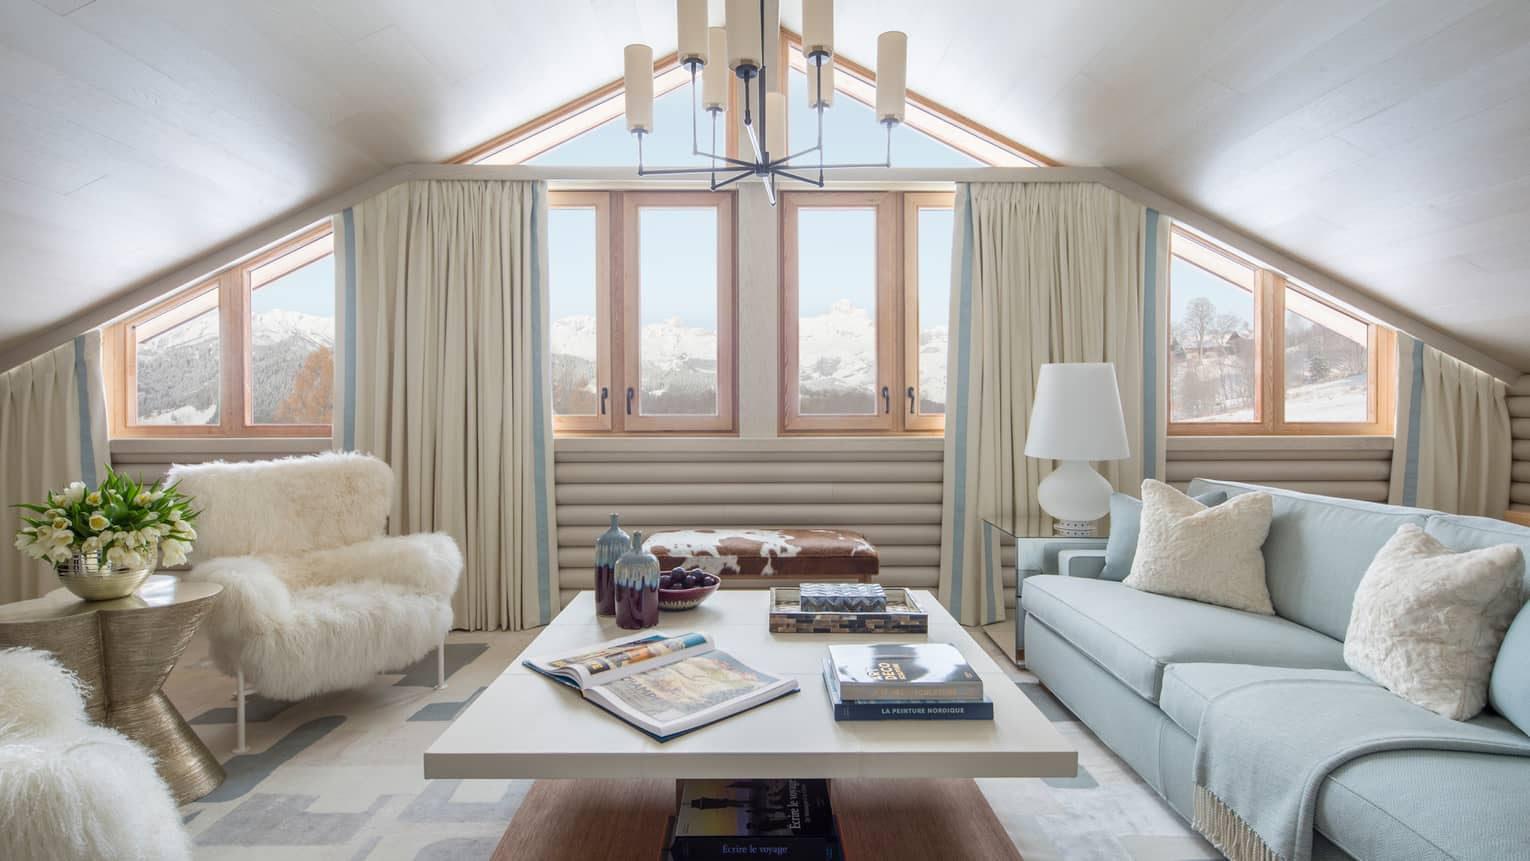 Suite Mont D'Arbois chandelier, windows under gable roof, white sofa, faux fur armchairs